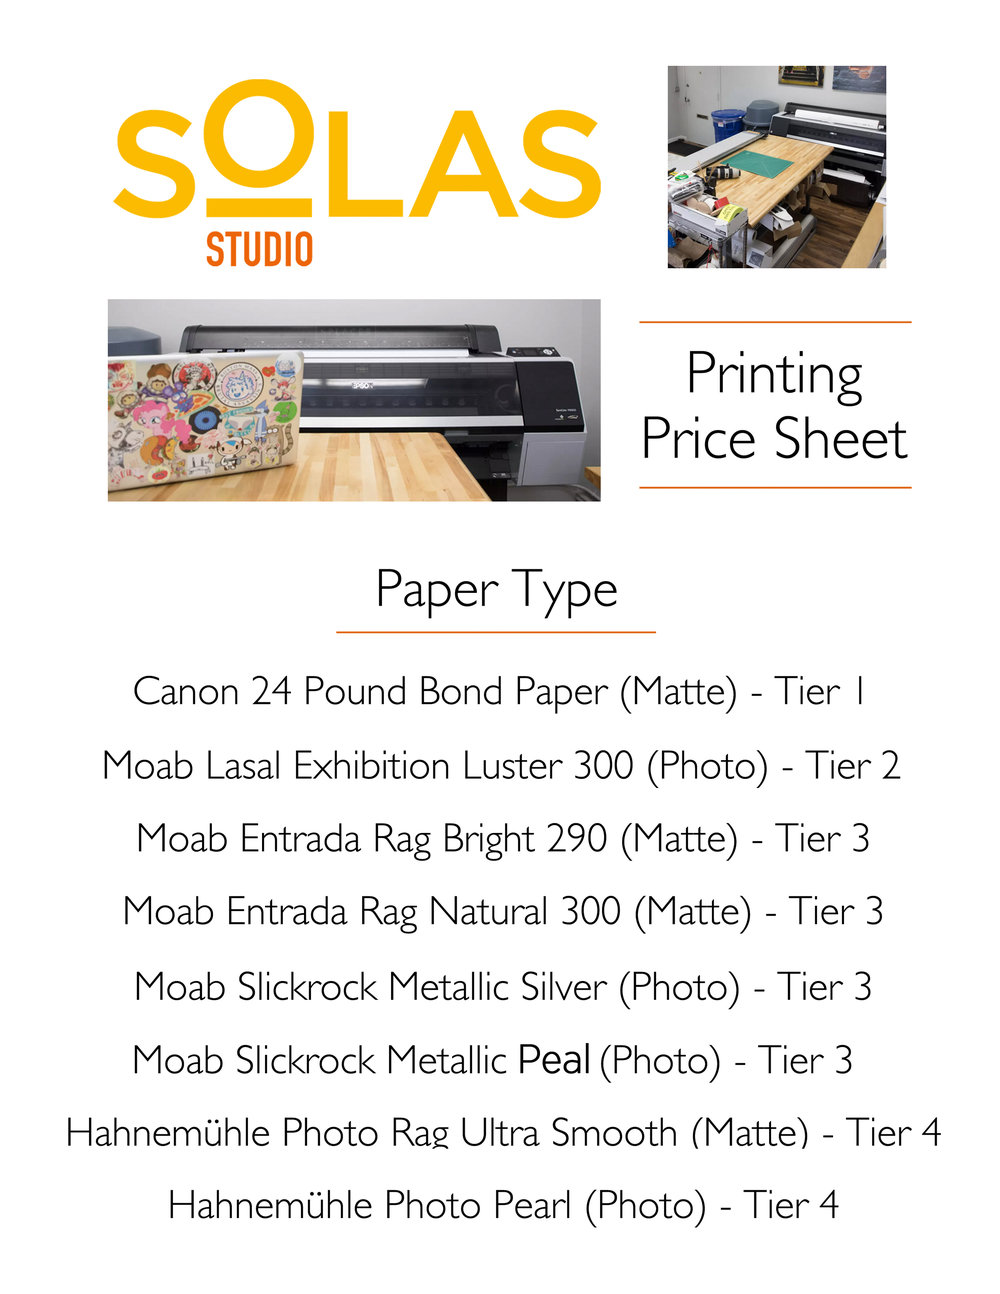 Print Pricing Sheet [Updated Logo]-1.jpg